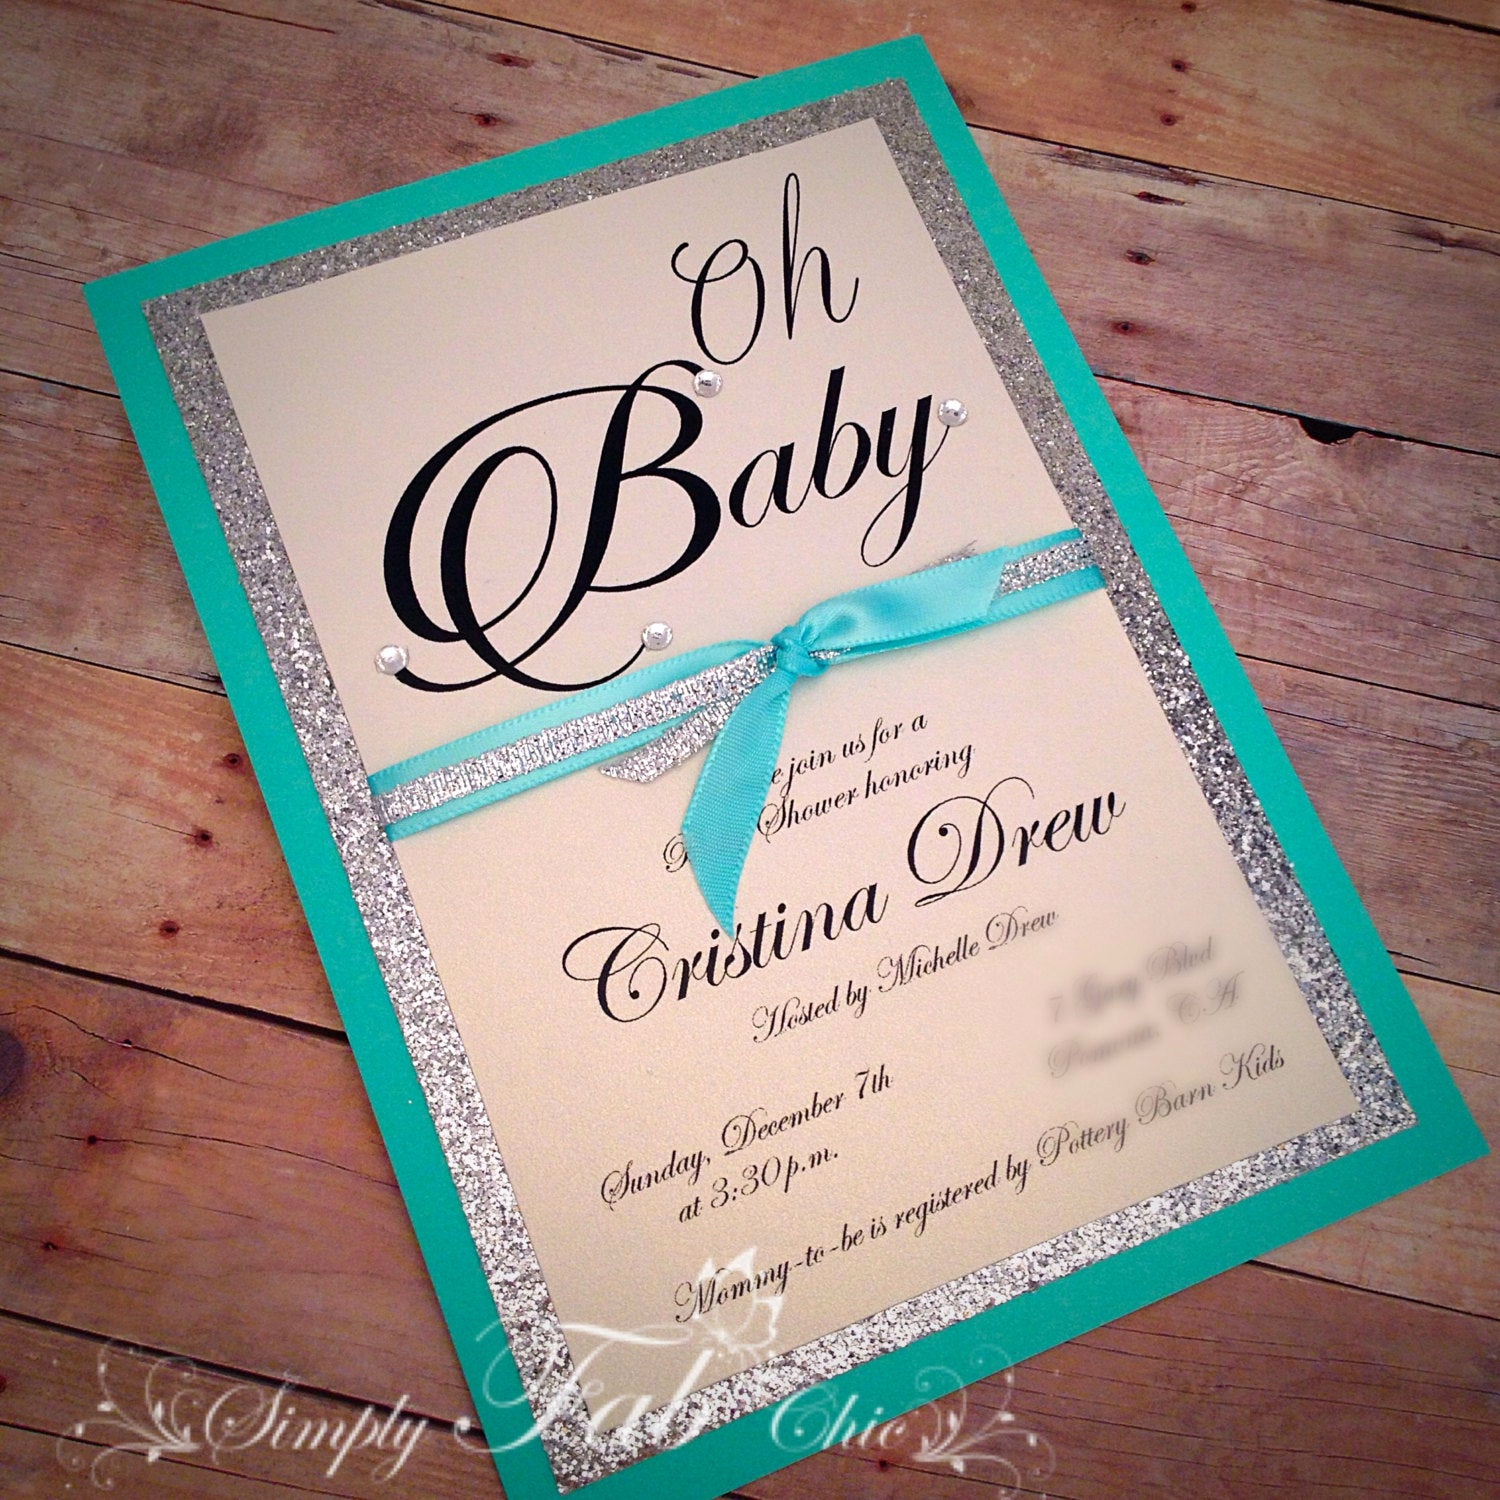 Homemade Baby Shower Invitation Ideas Fresh Custom Handmade Tiffany Turquoise & Silver Glitter Baby Shower